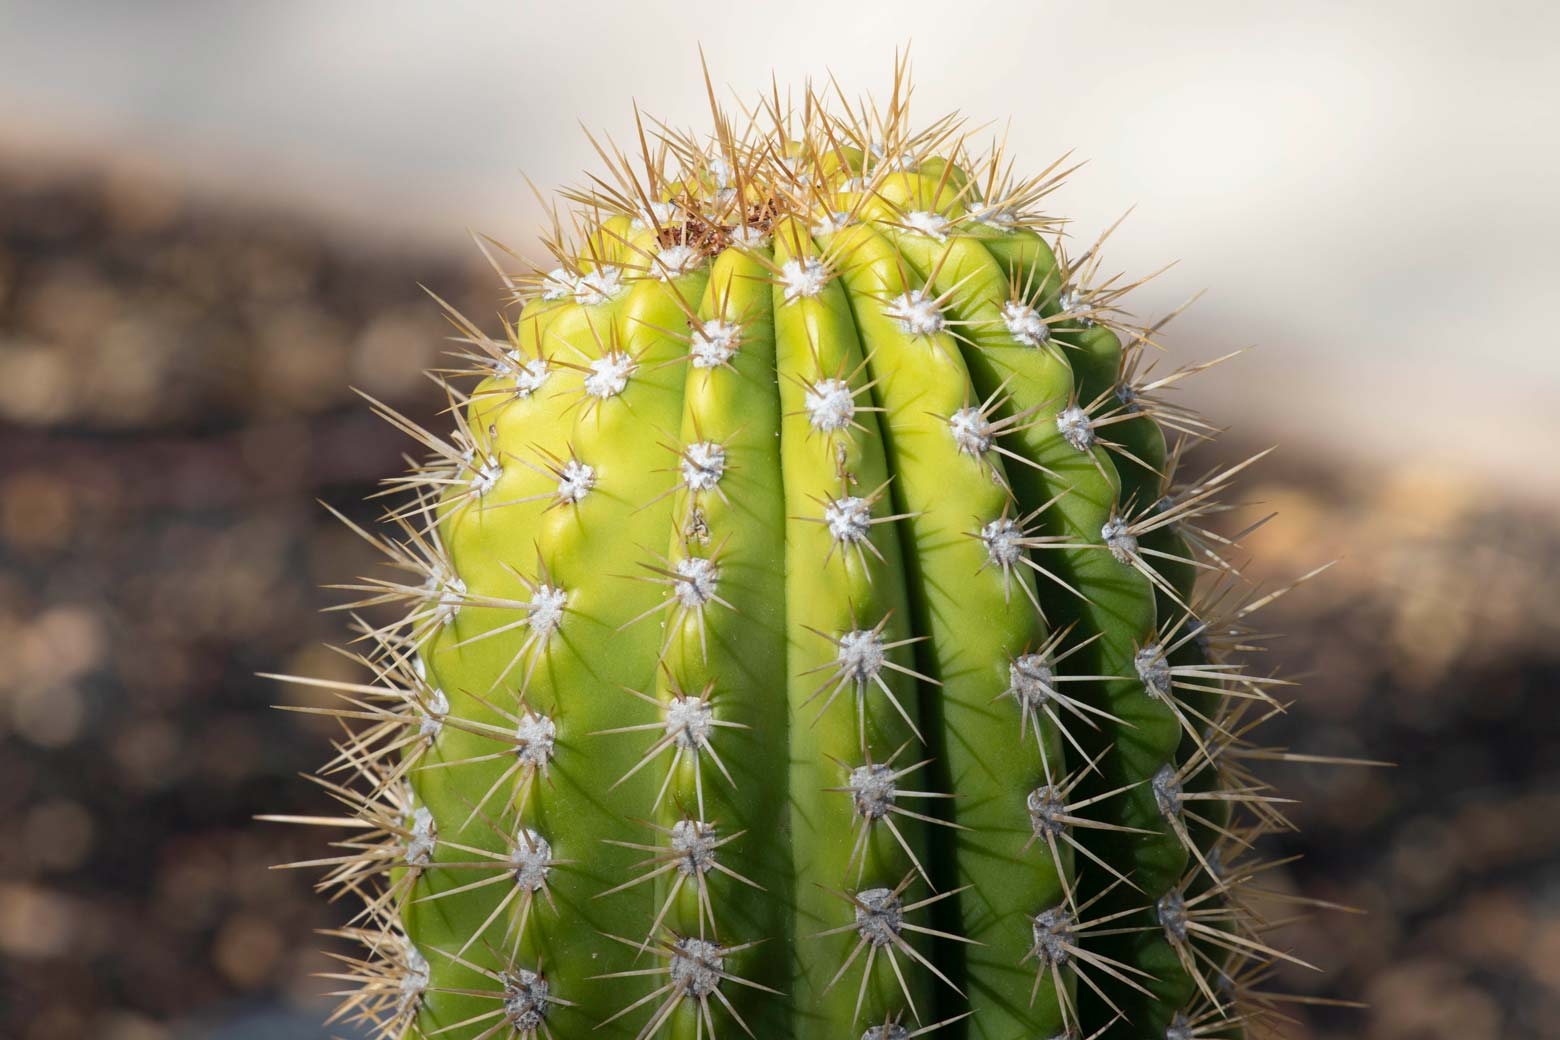 A close-up of the top of a Torch cactus.